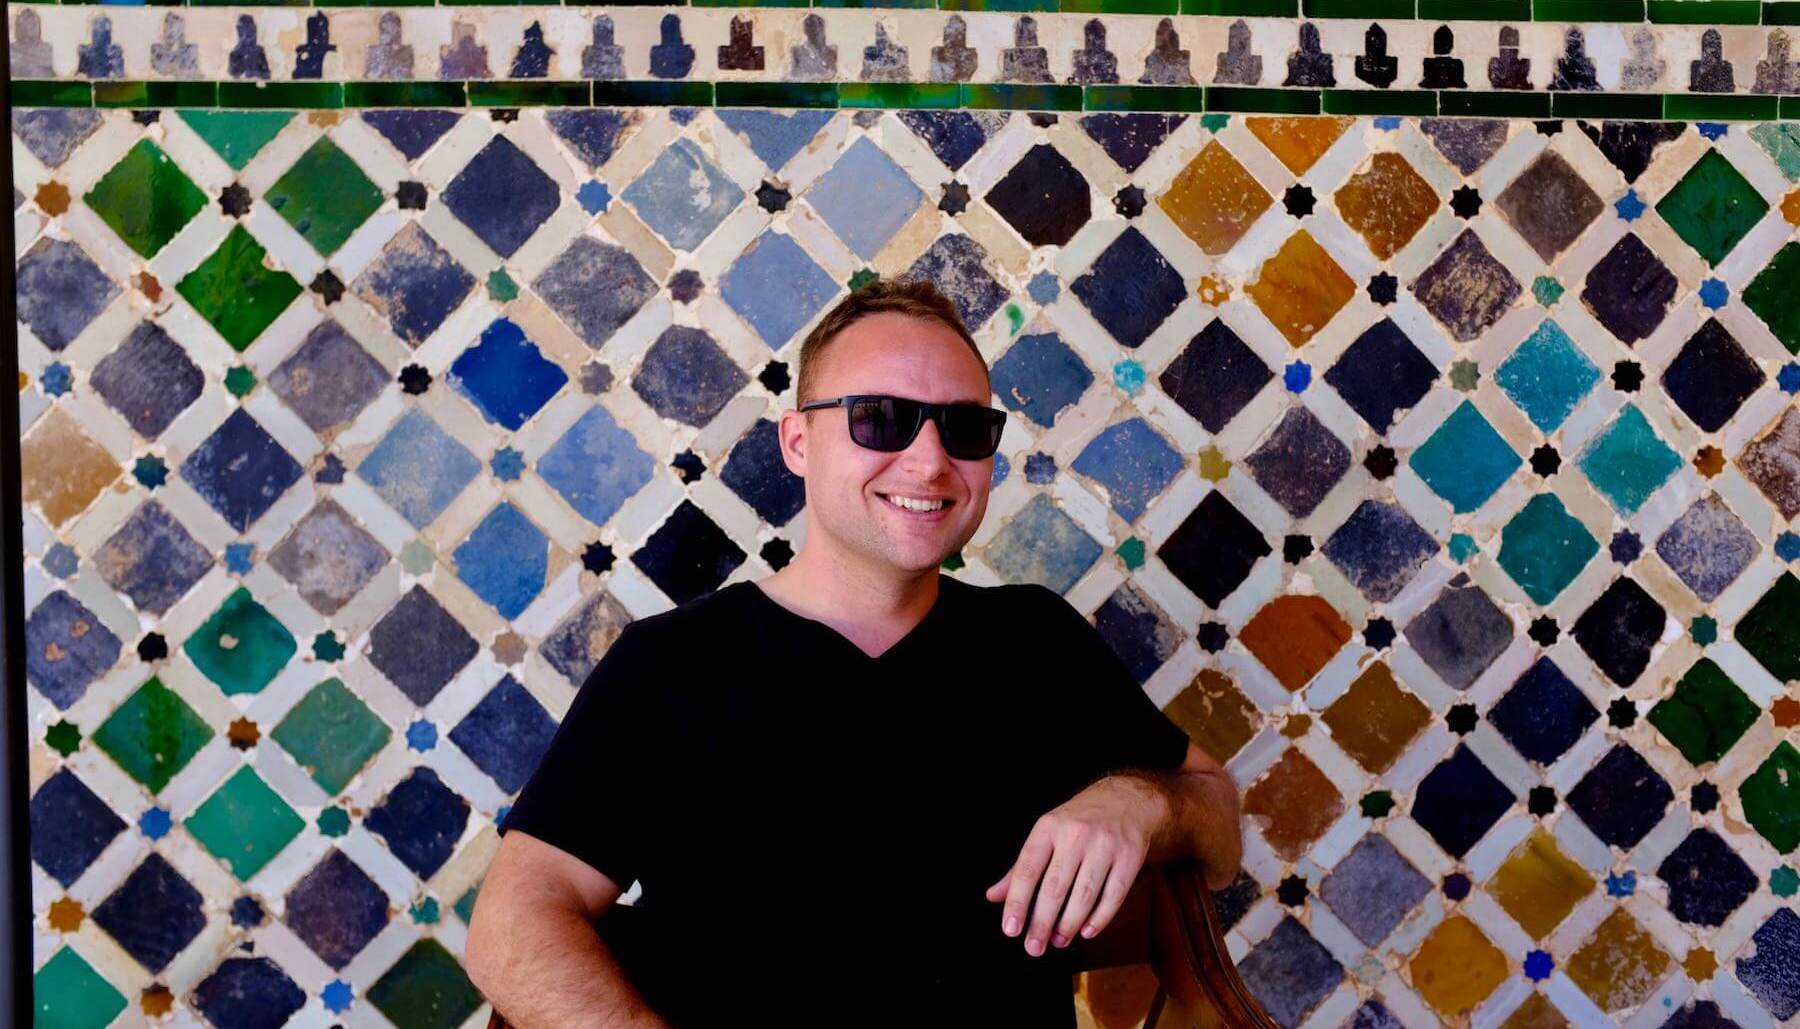 Interview with Keith Williams: Working Remotely from 34 Countries in the Past 3 Years